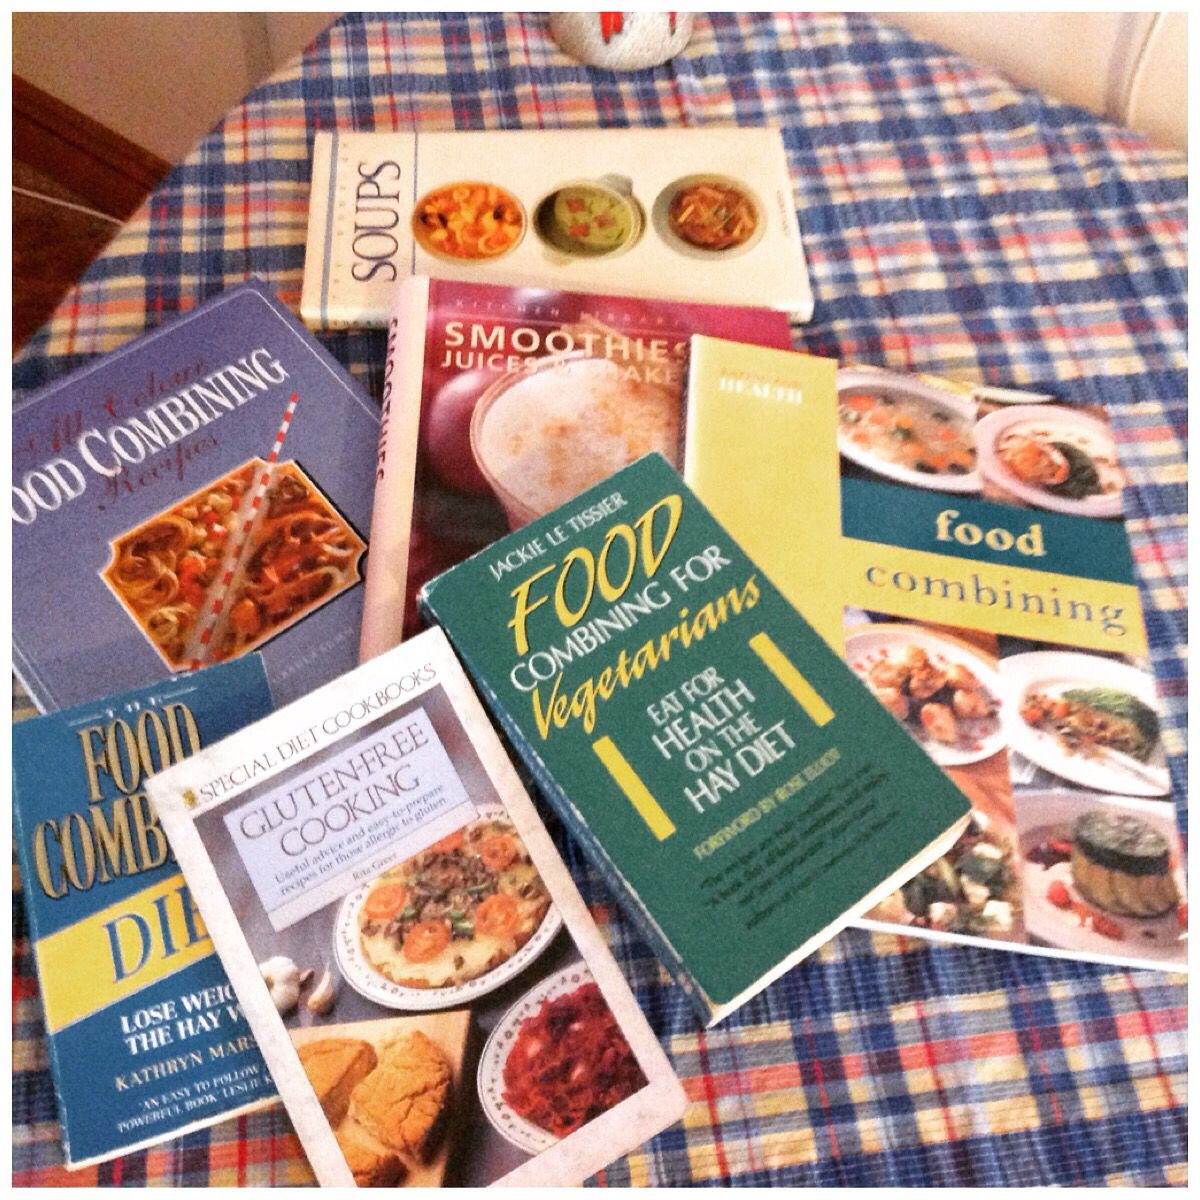 Some of my original cook books that have inspired me to follow some of my original cook books that have inspired me to follow food combining recipes forumfinder Gallery